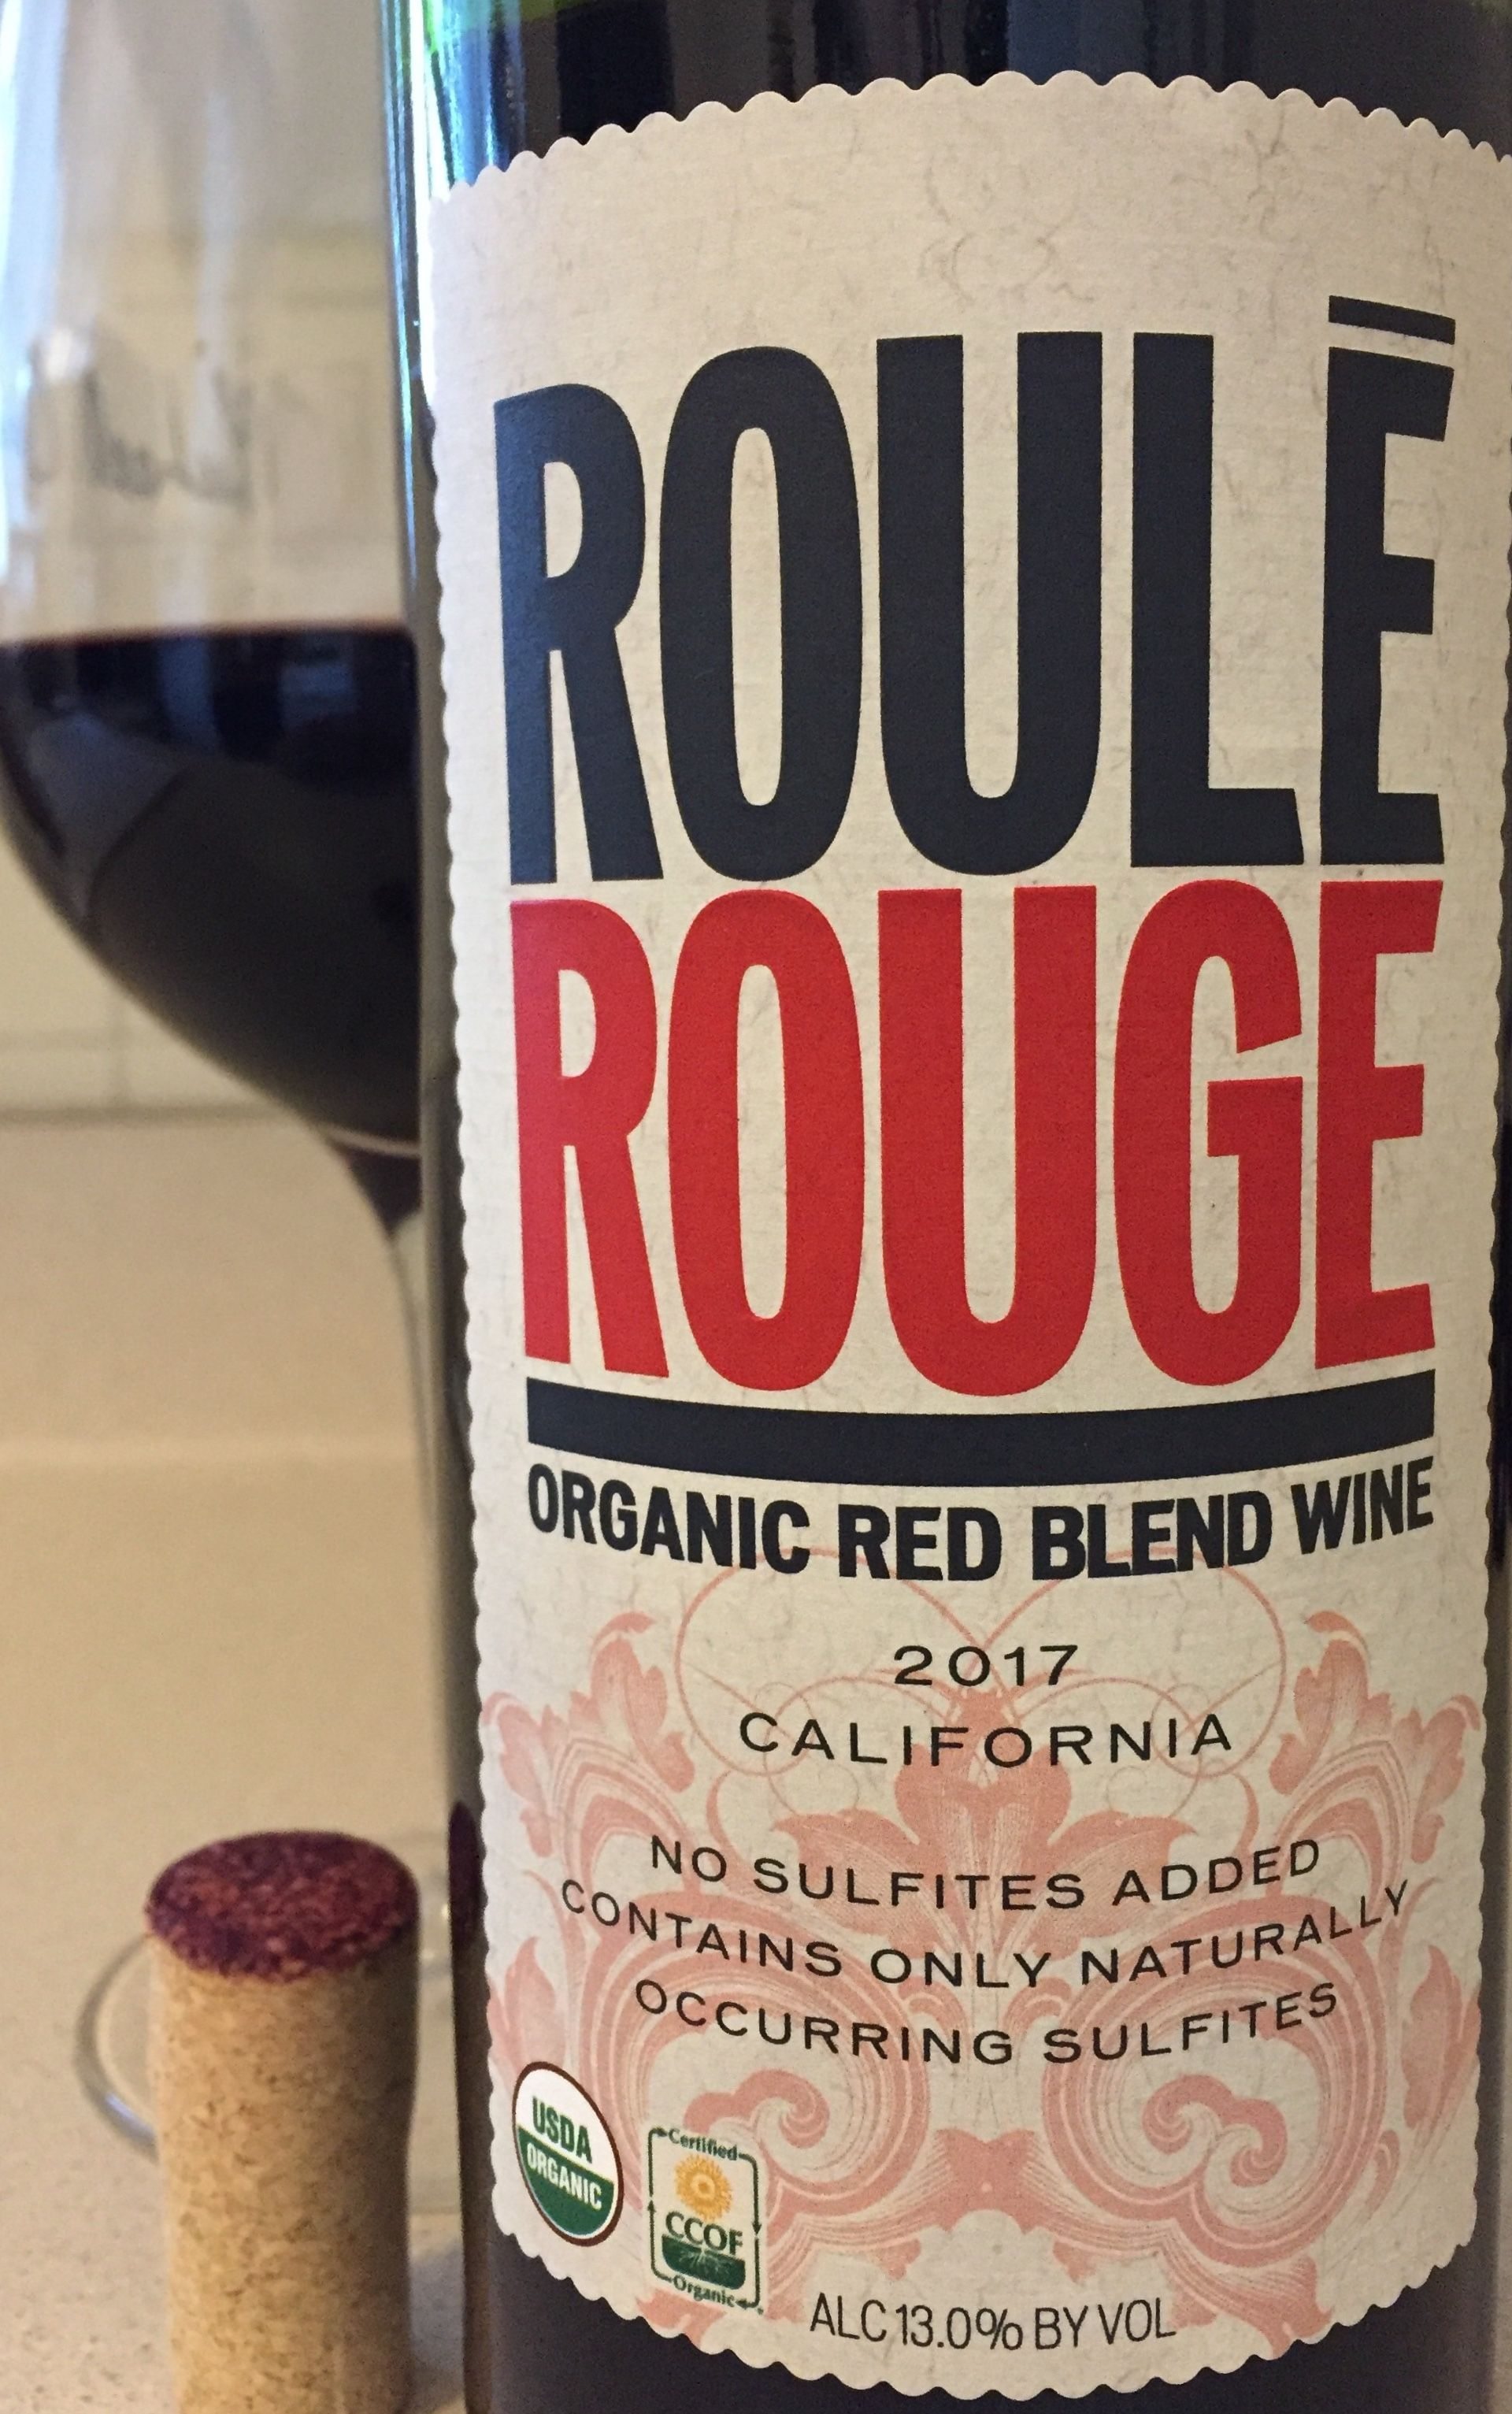 Roule Rouge 2017 Organic Red Blend Wine California No Sulfites Added Contains Only Naturally Occurring Sulfites Red Blend Wine Wine Organic